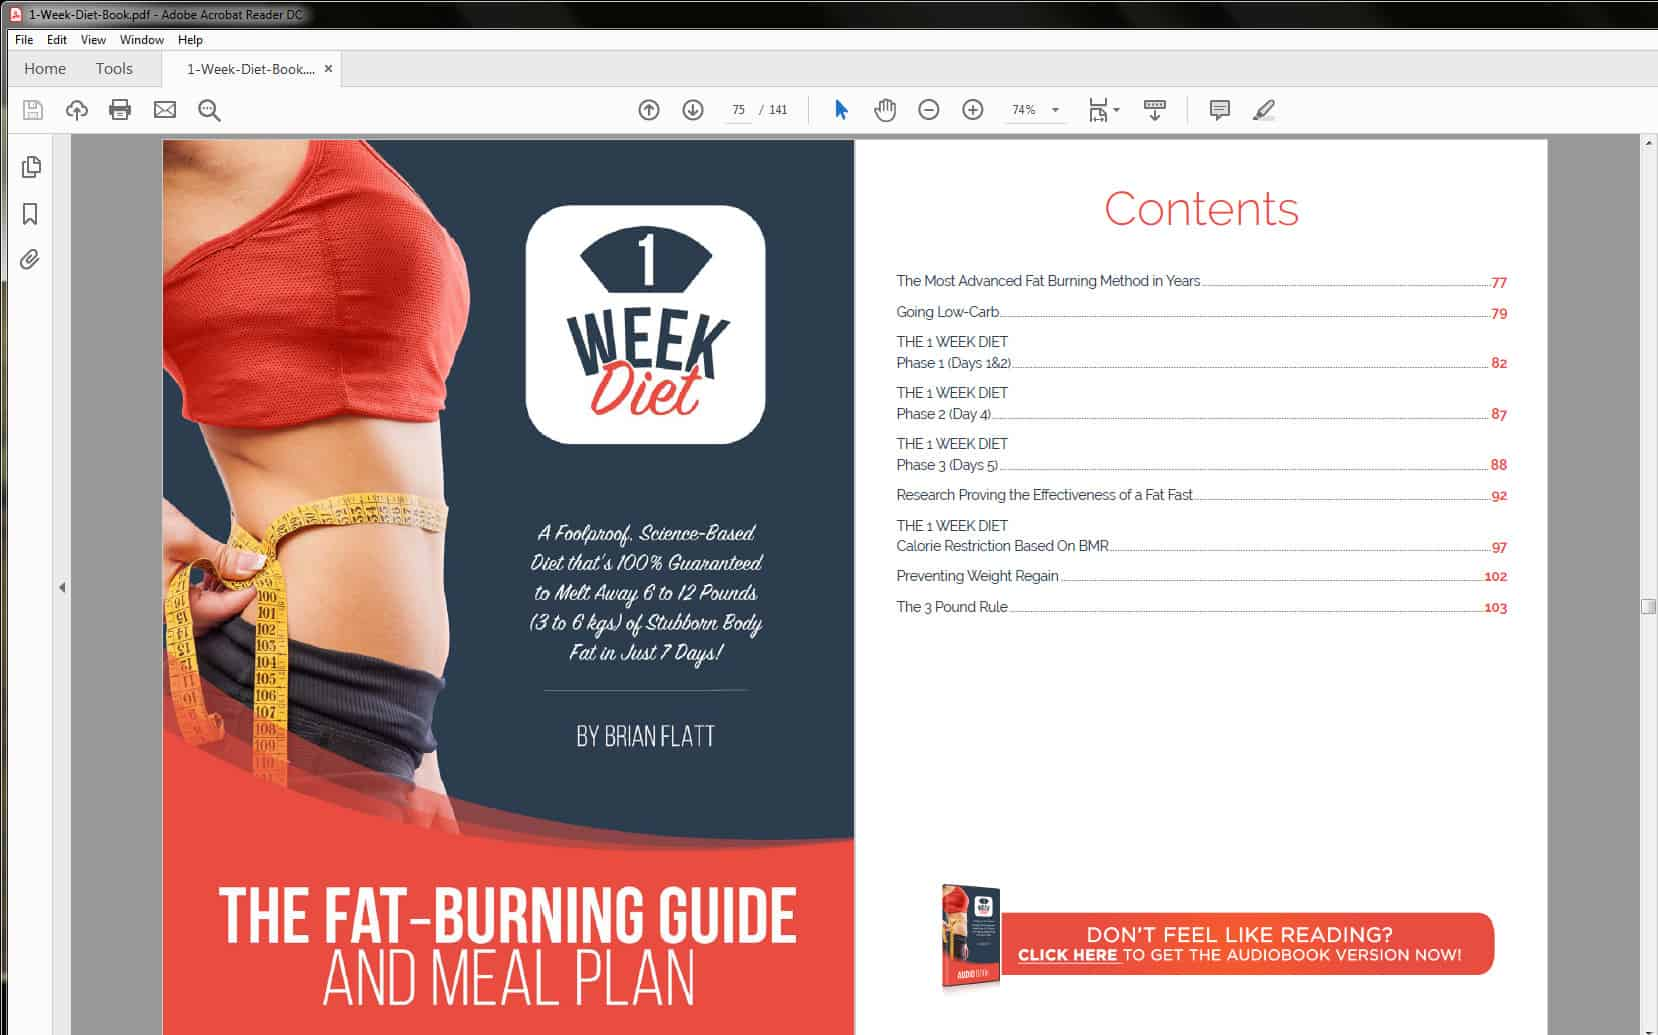 Fat Burning Guide and Meal Plan Table of Contents